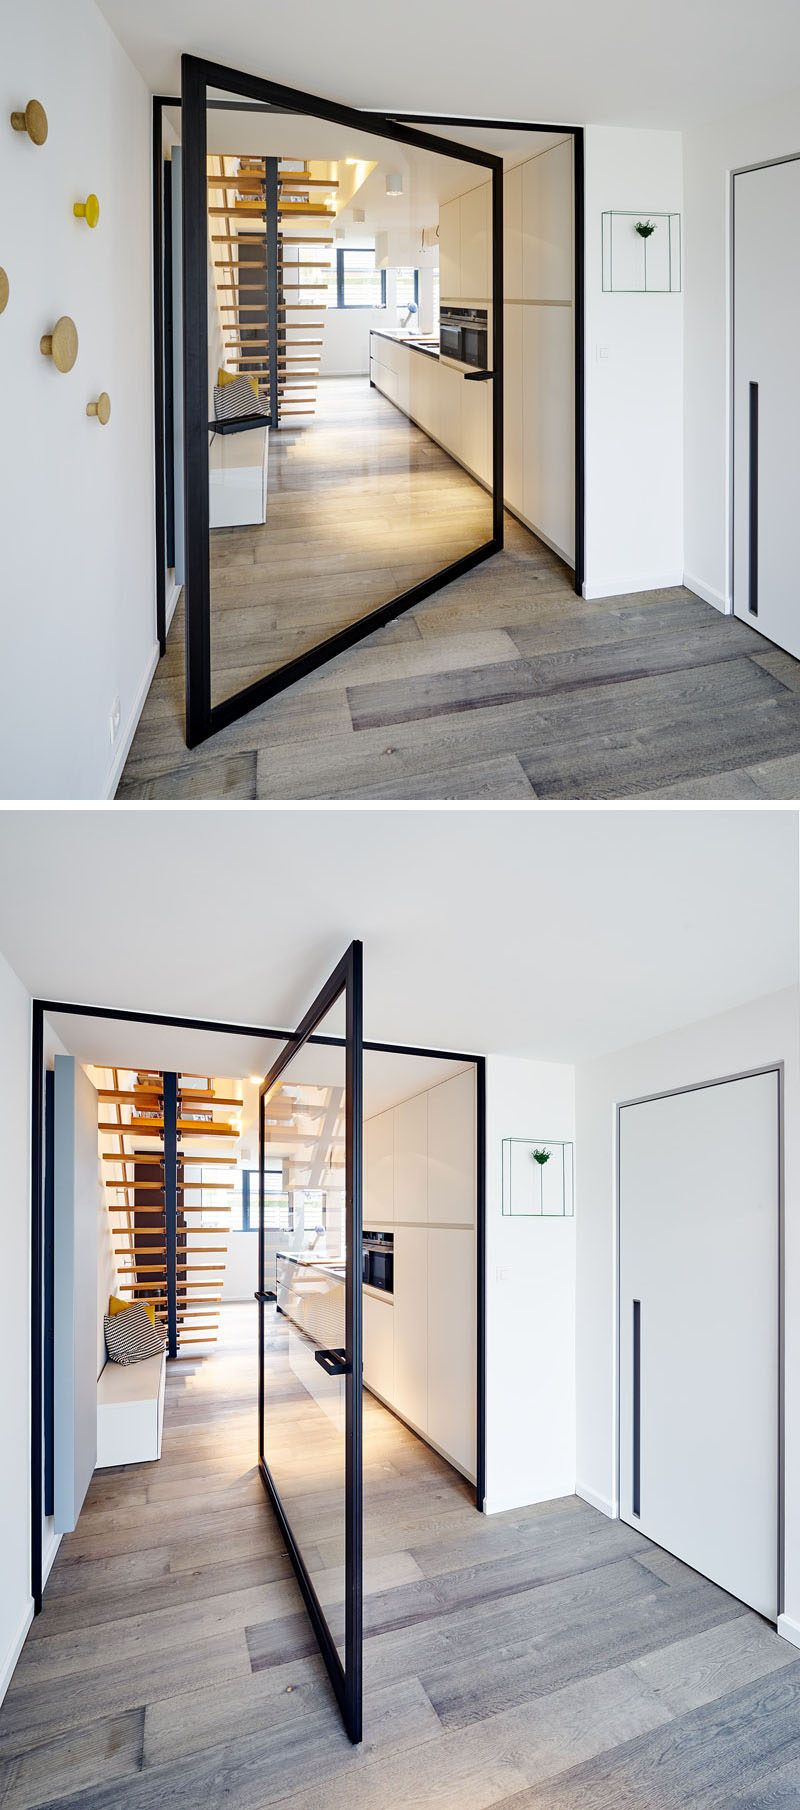 This Glass Pivot Door Has A Unique Central Pivoting Hinge That Allows It To Swing In Both Directions Enabling The Doors Revolve Up 360